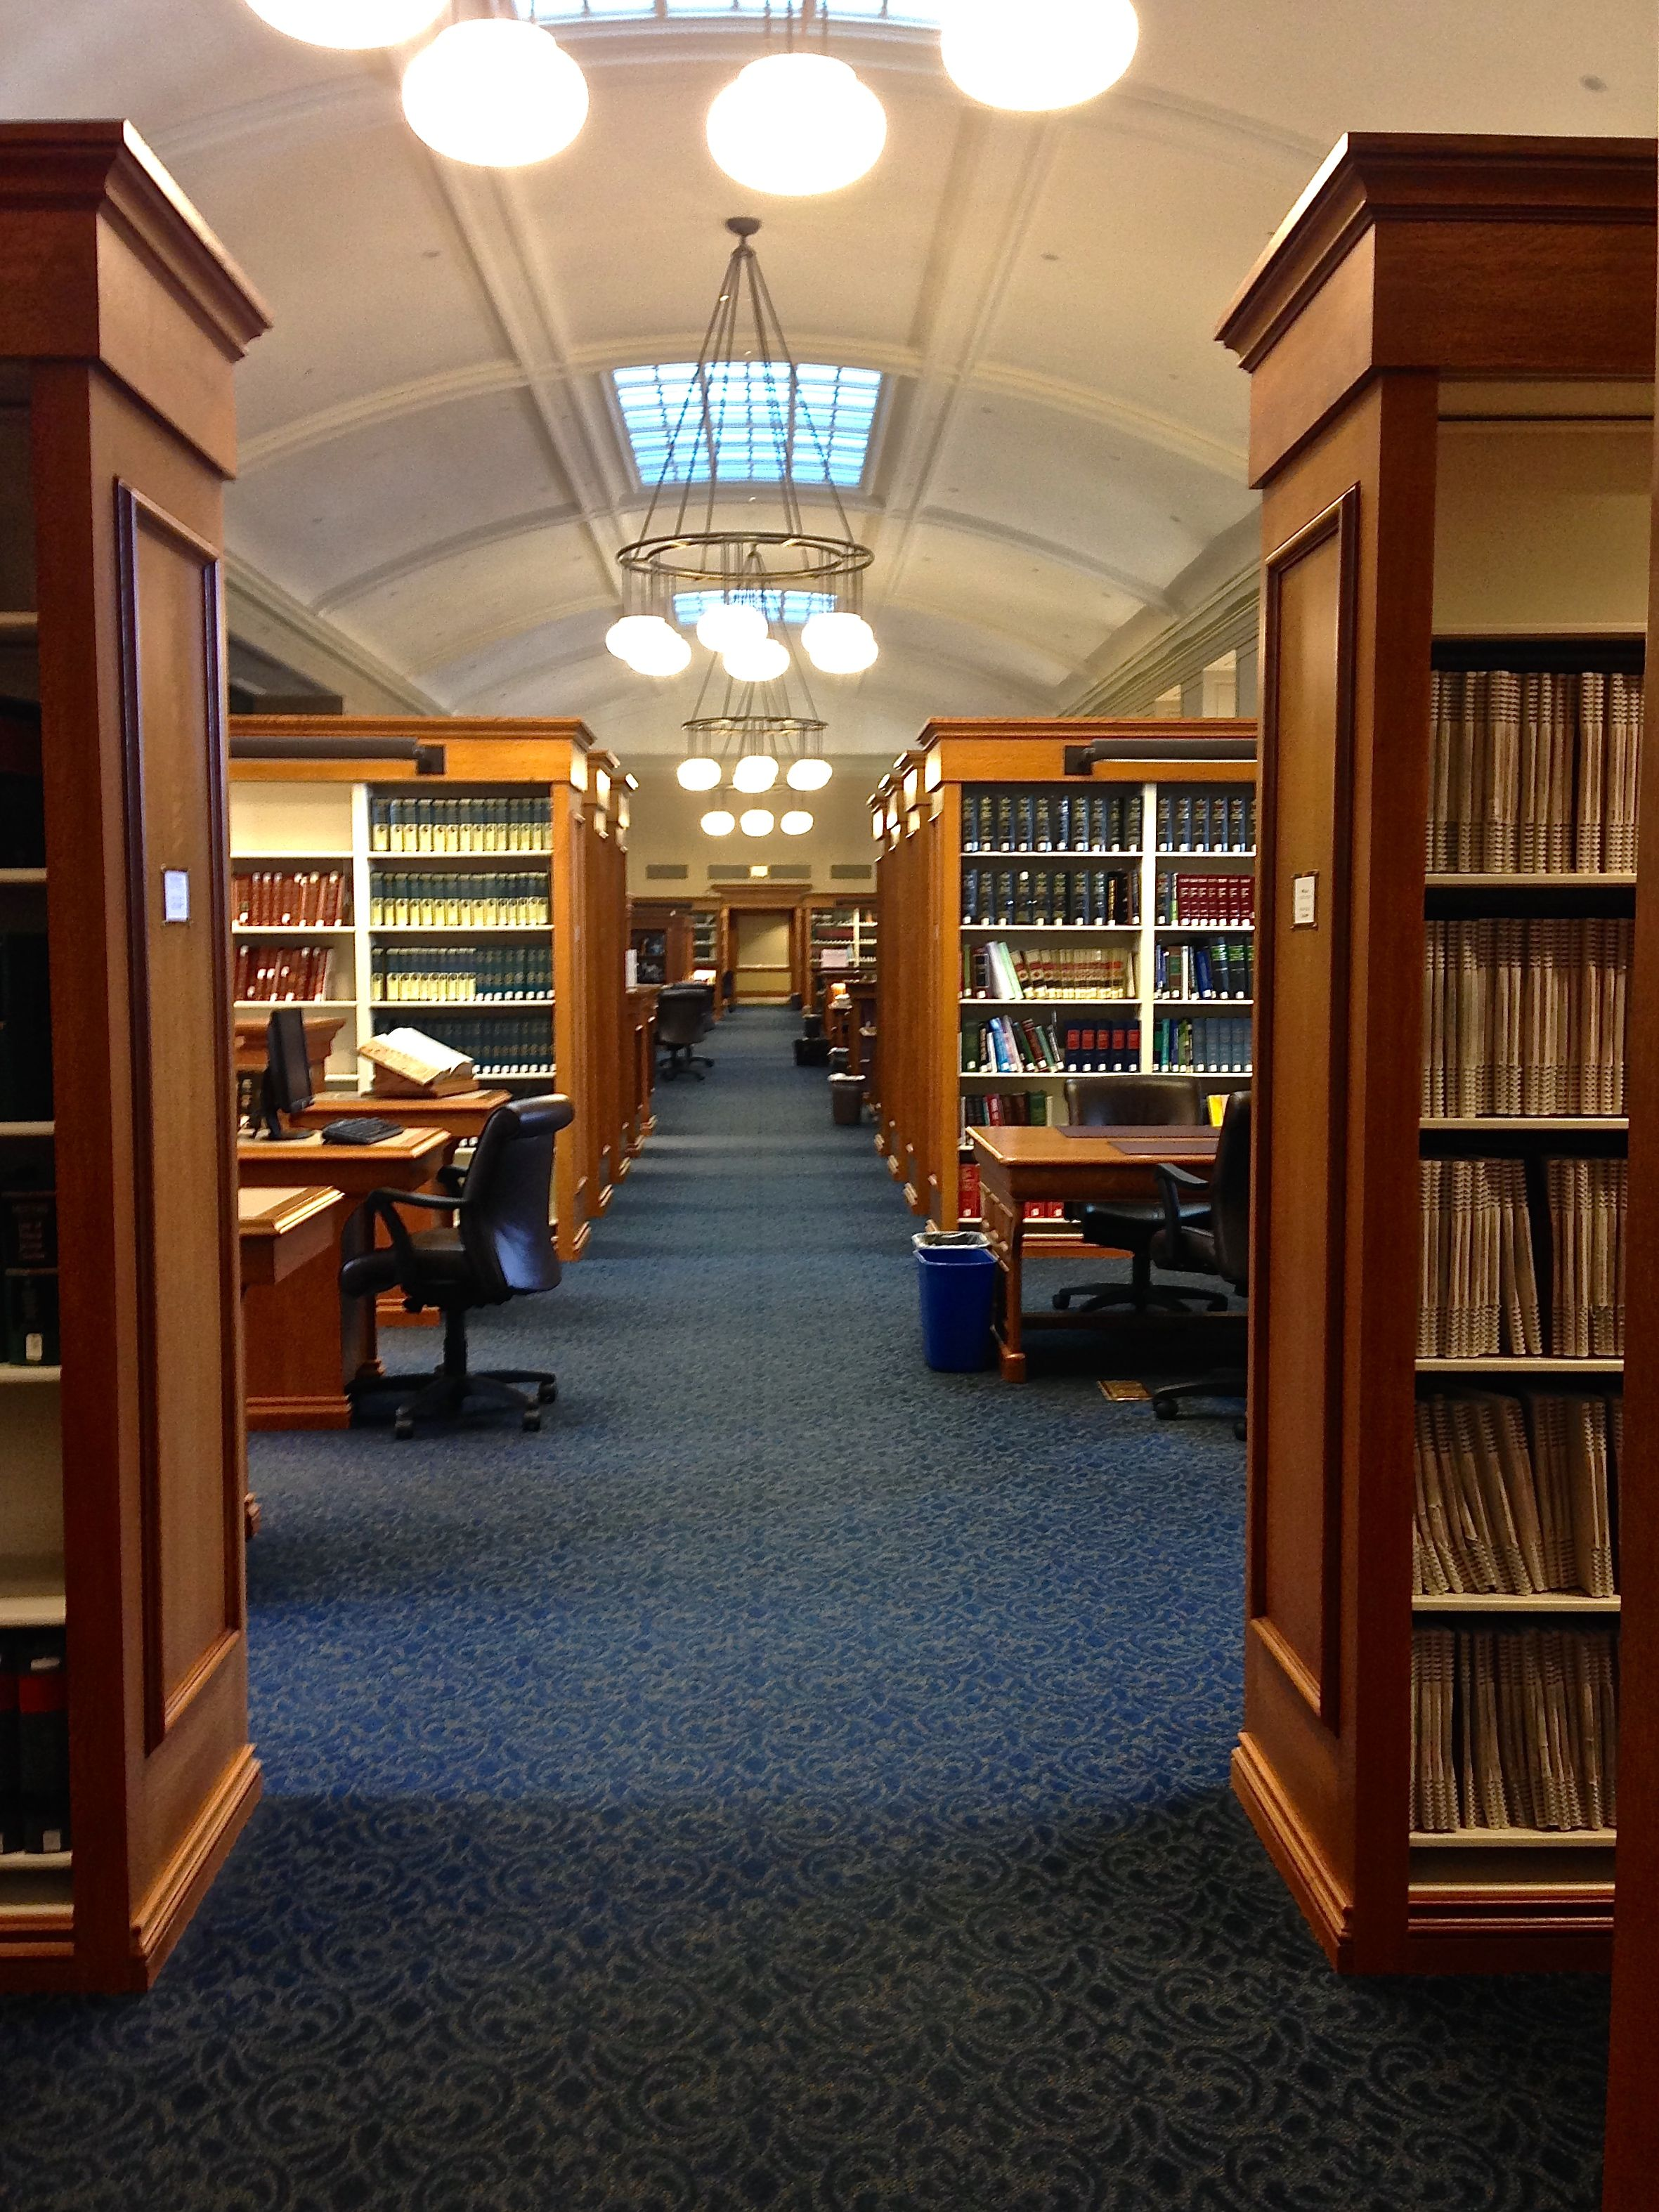 The Social Law Library Is On The 4th Floor Of The John Adams Courthouse It S The Oldest Law Library In The Country Old Things Courthouse Flooring